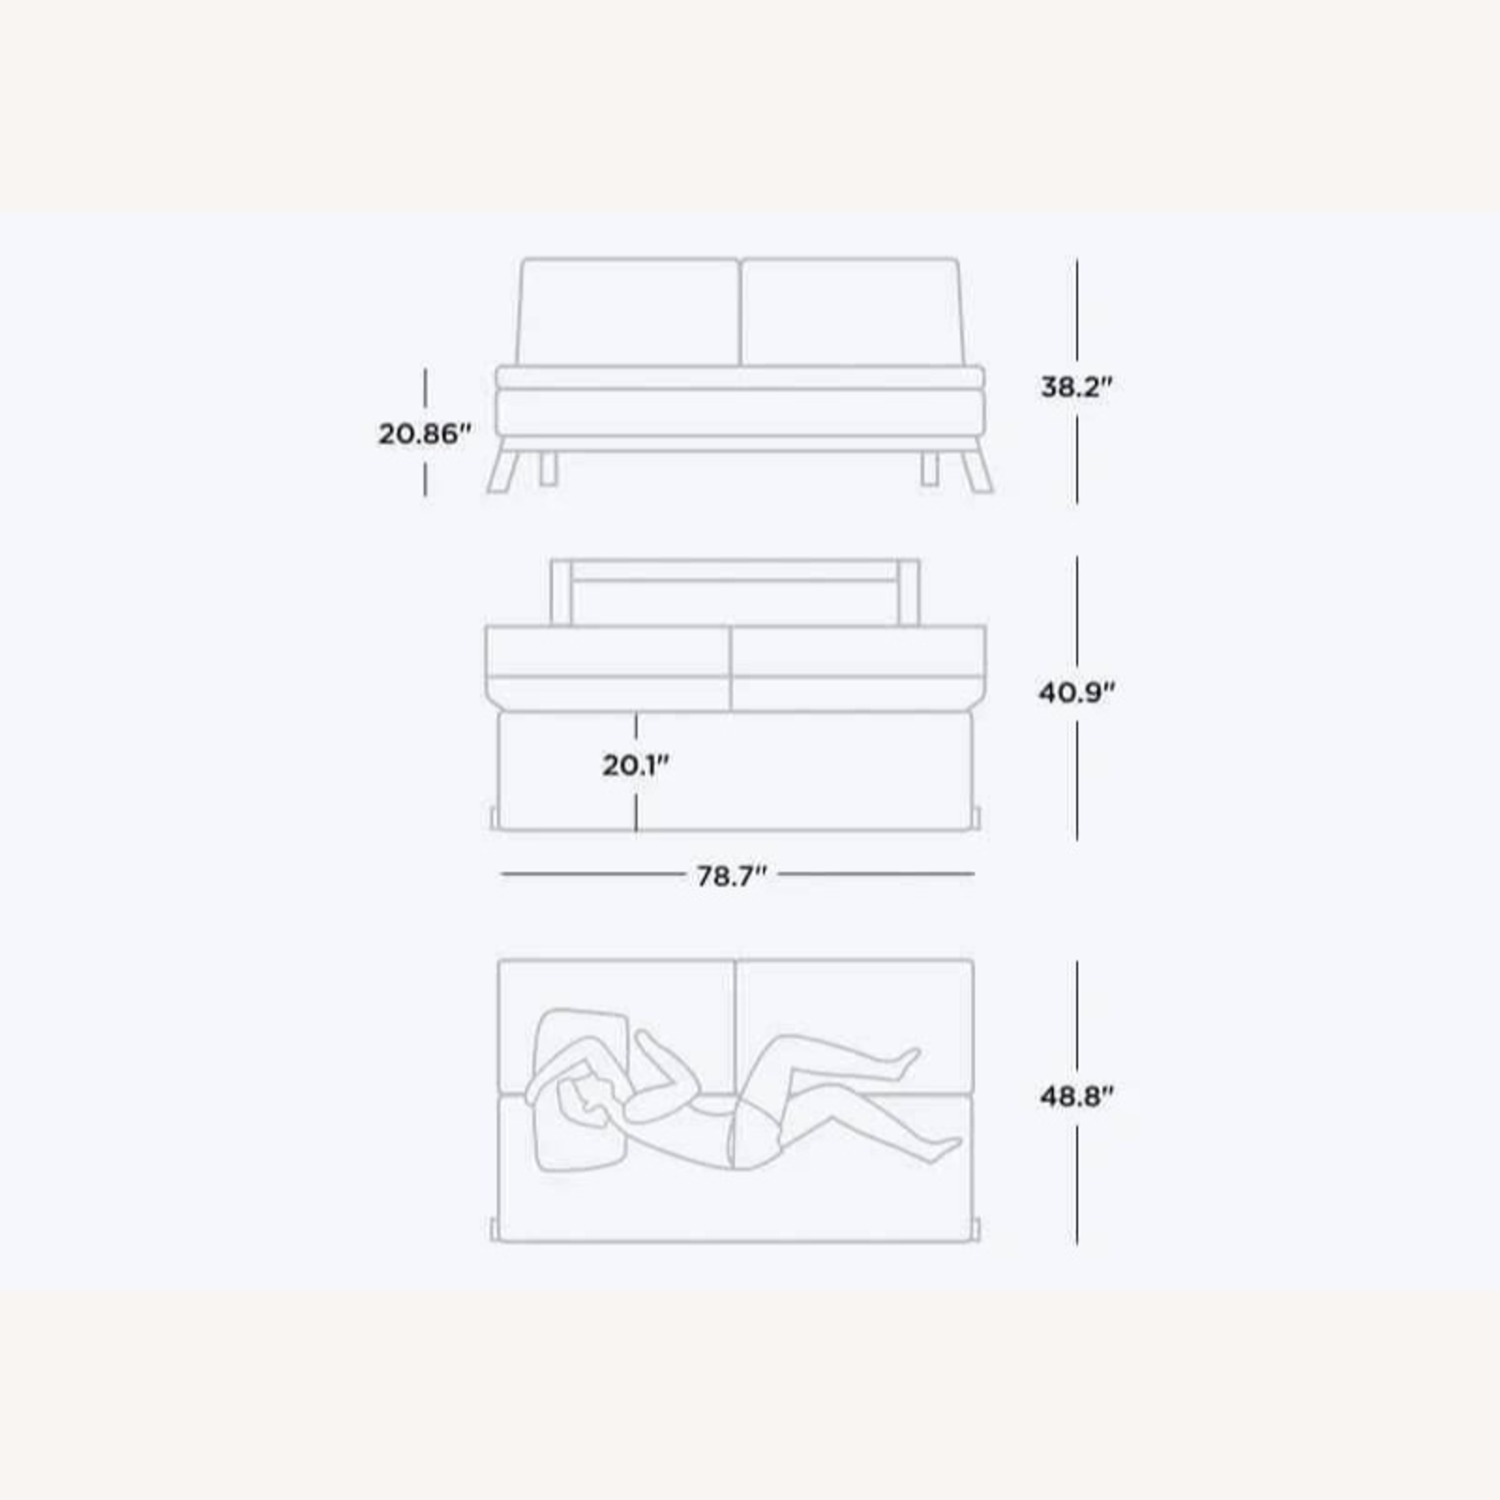 Coddle Toggle Convertible Couch Perl/White Leather - image-4